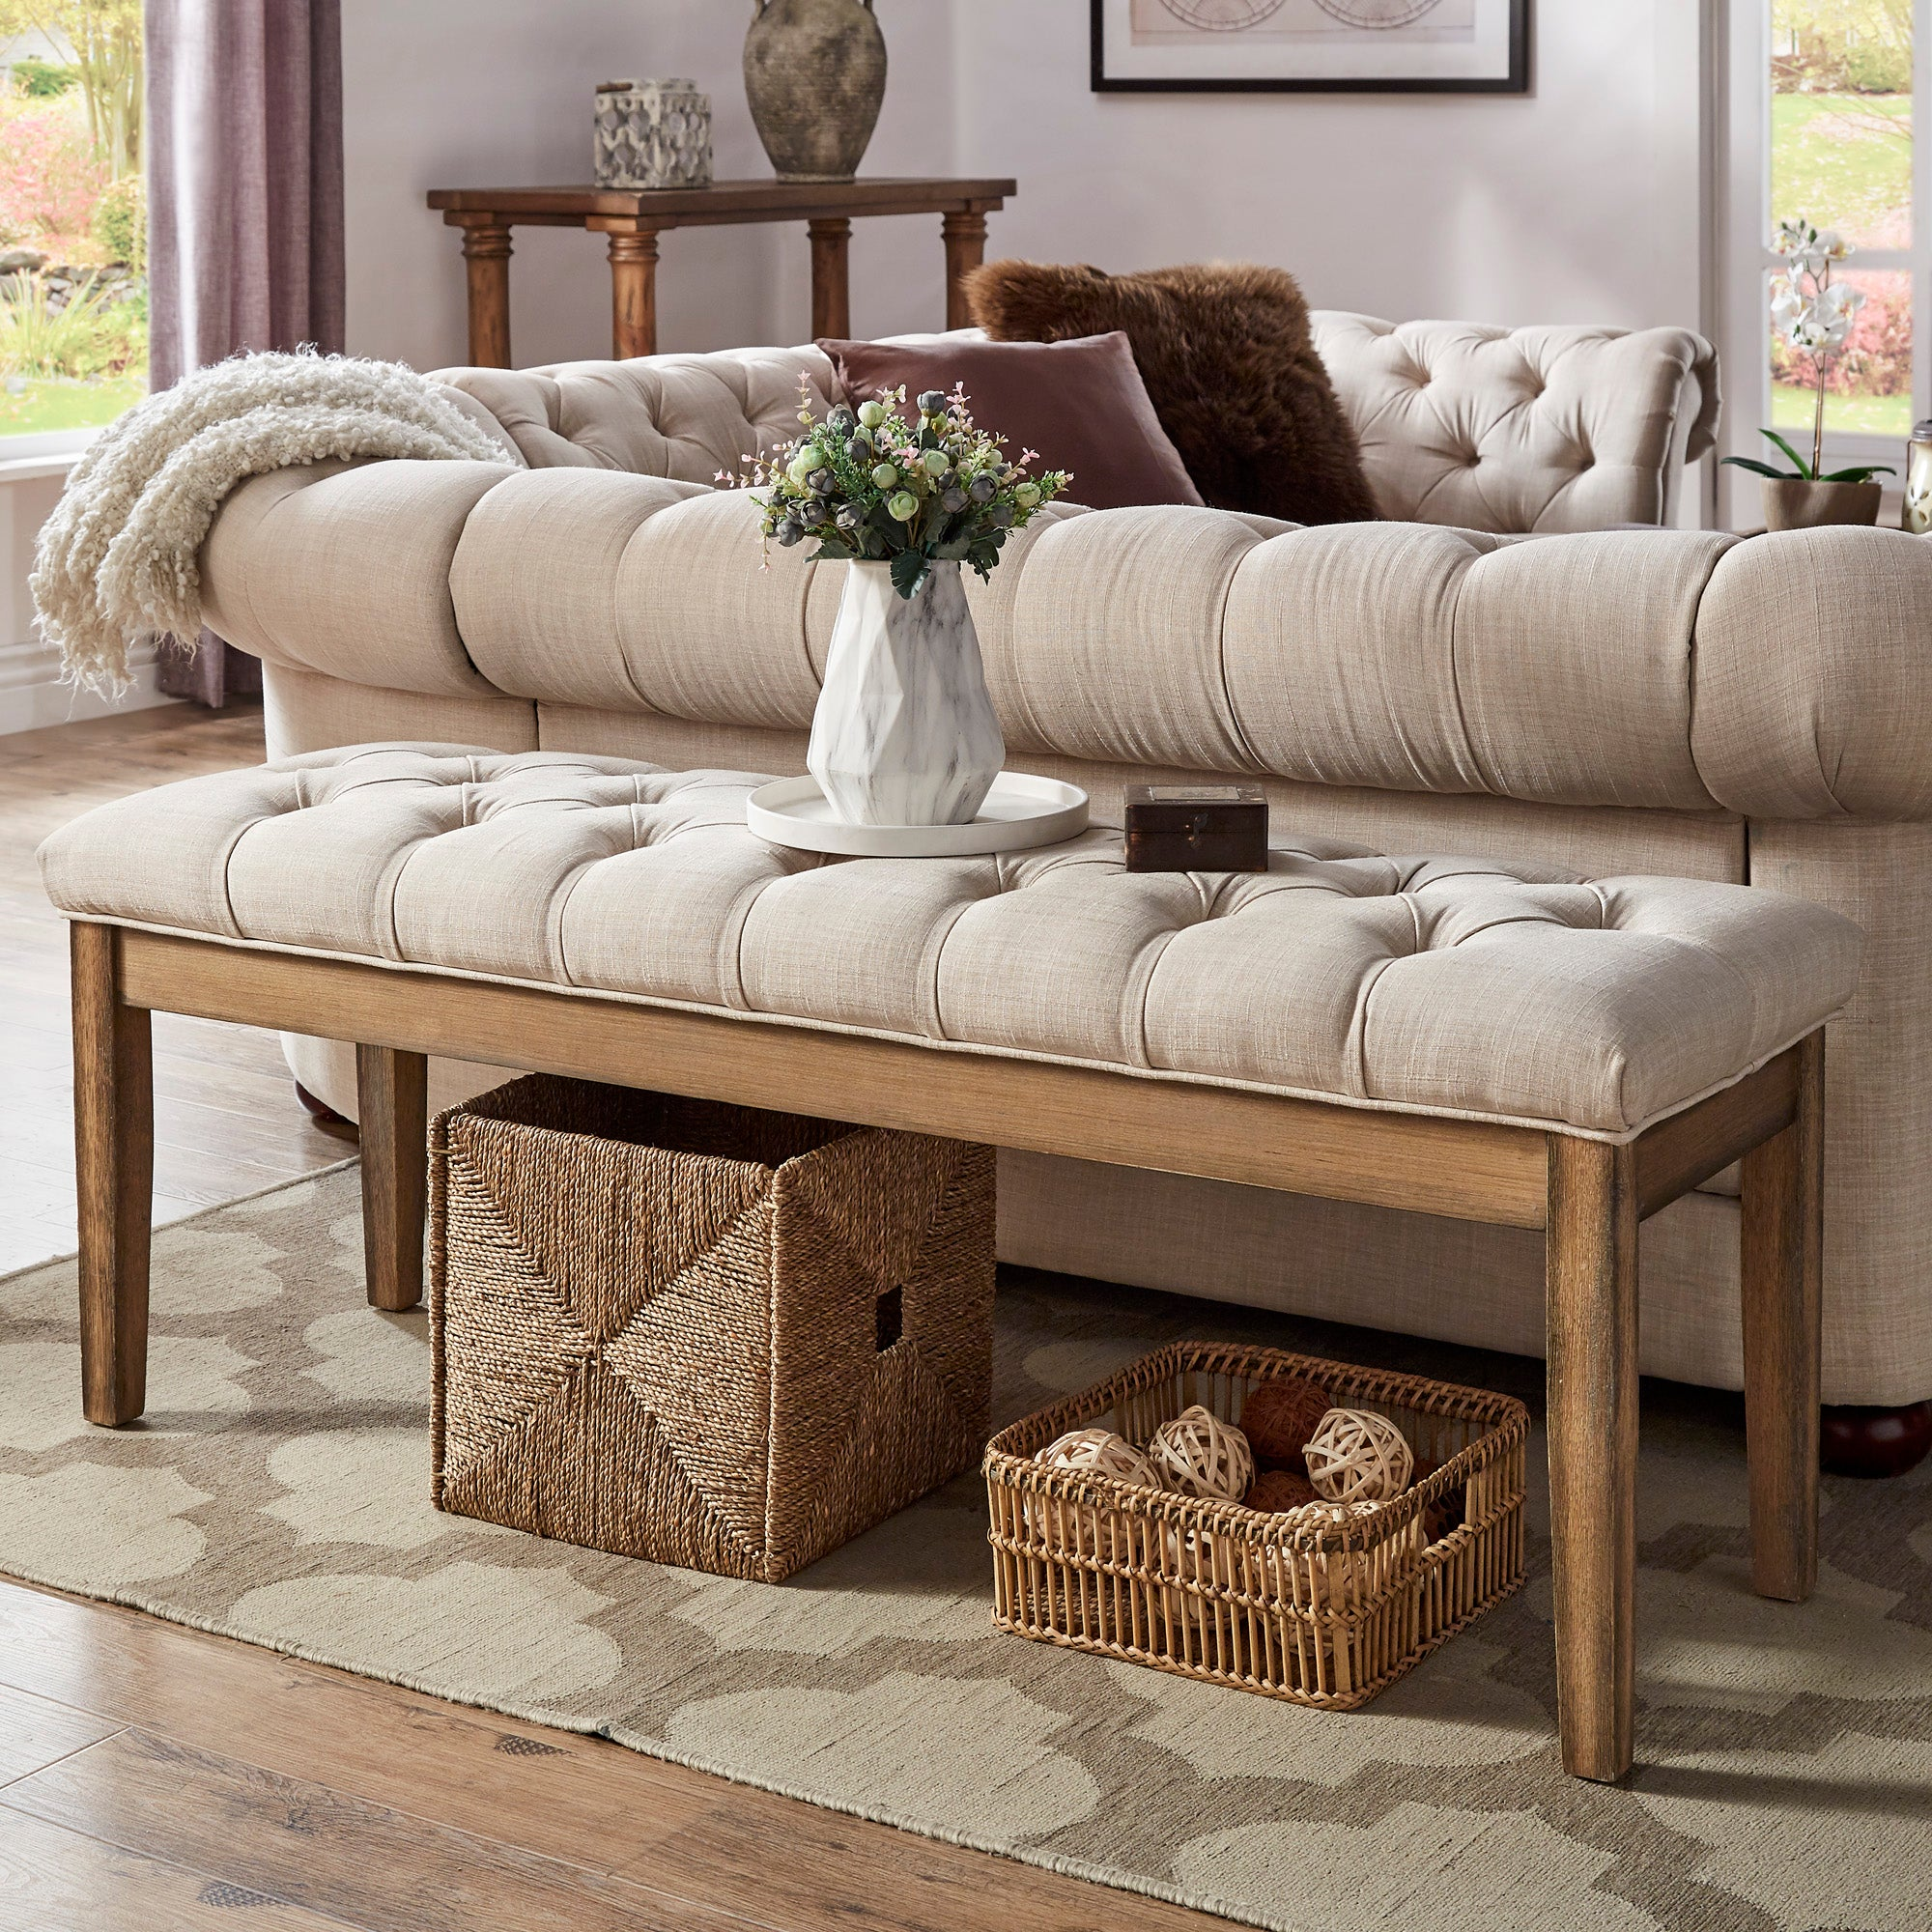 Premium Tufted Reclaimed 52-inch Upholstered Bench - Beige